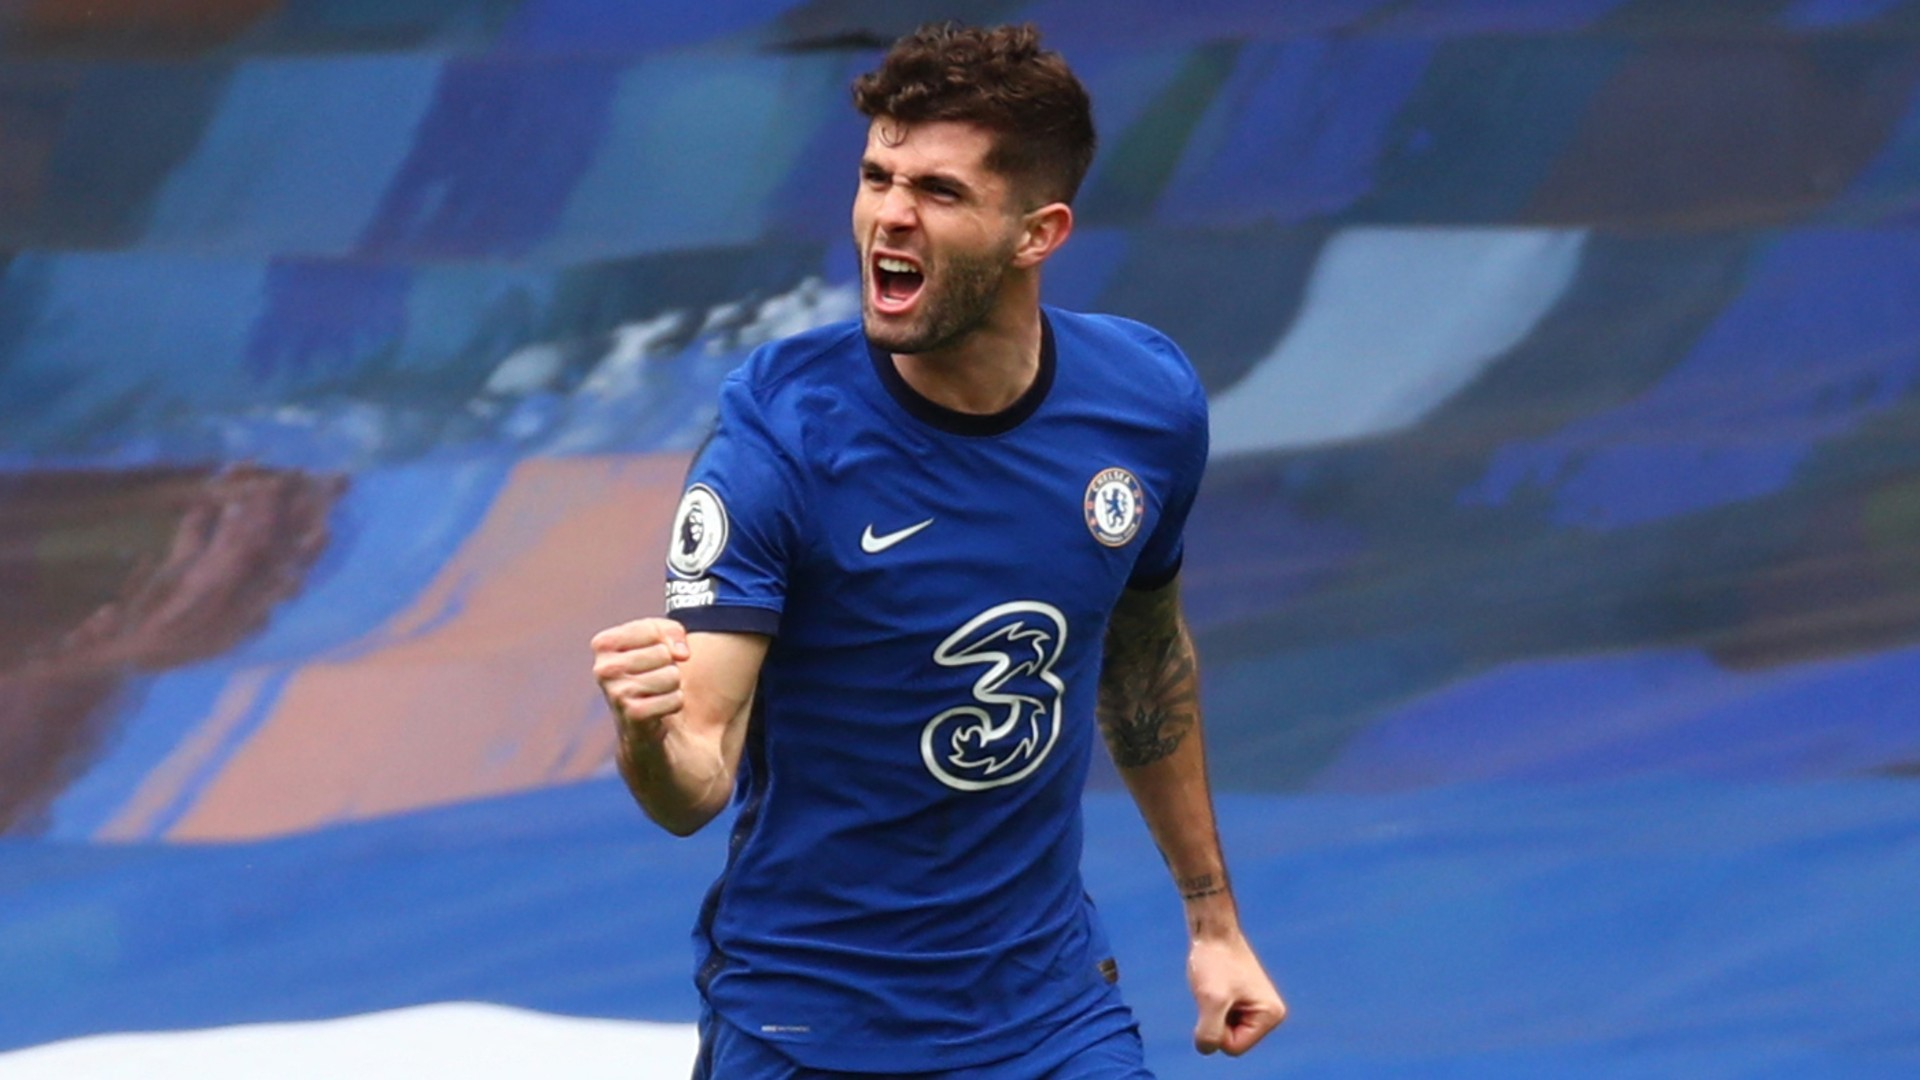 """Christian Pulisic dismissed rumors of Chelsea's departure: """"I'm happy here, of course"""""""